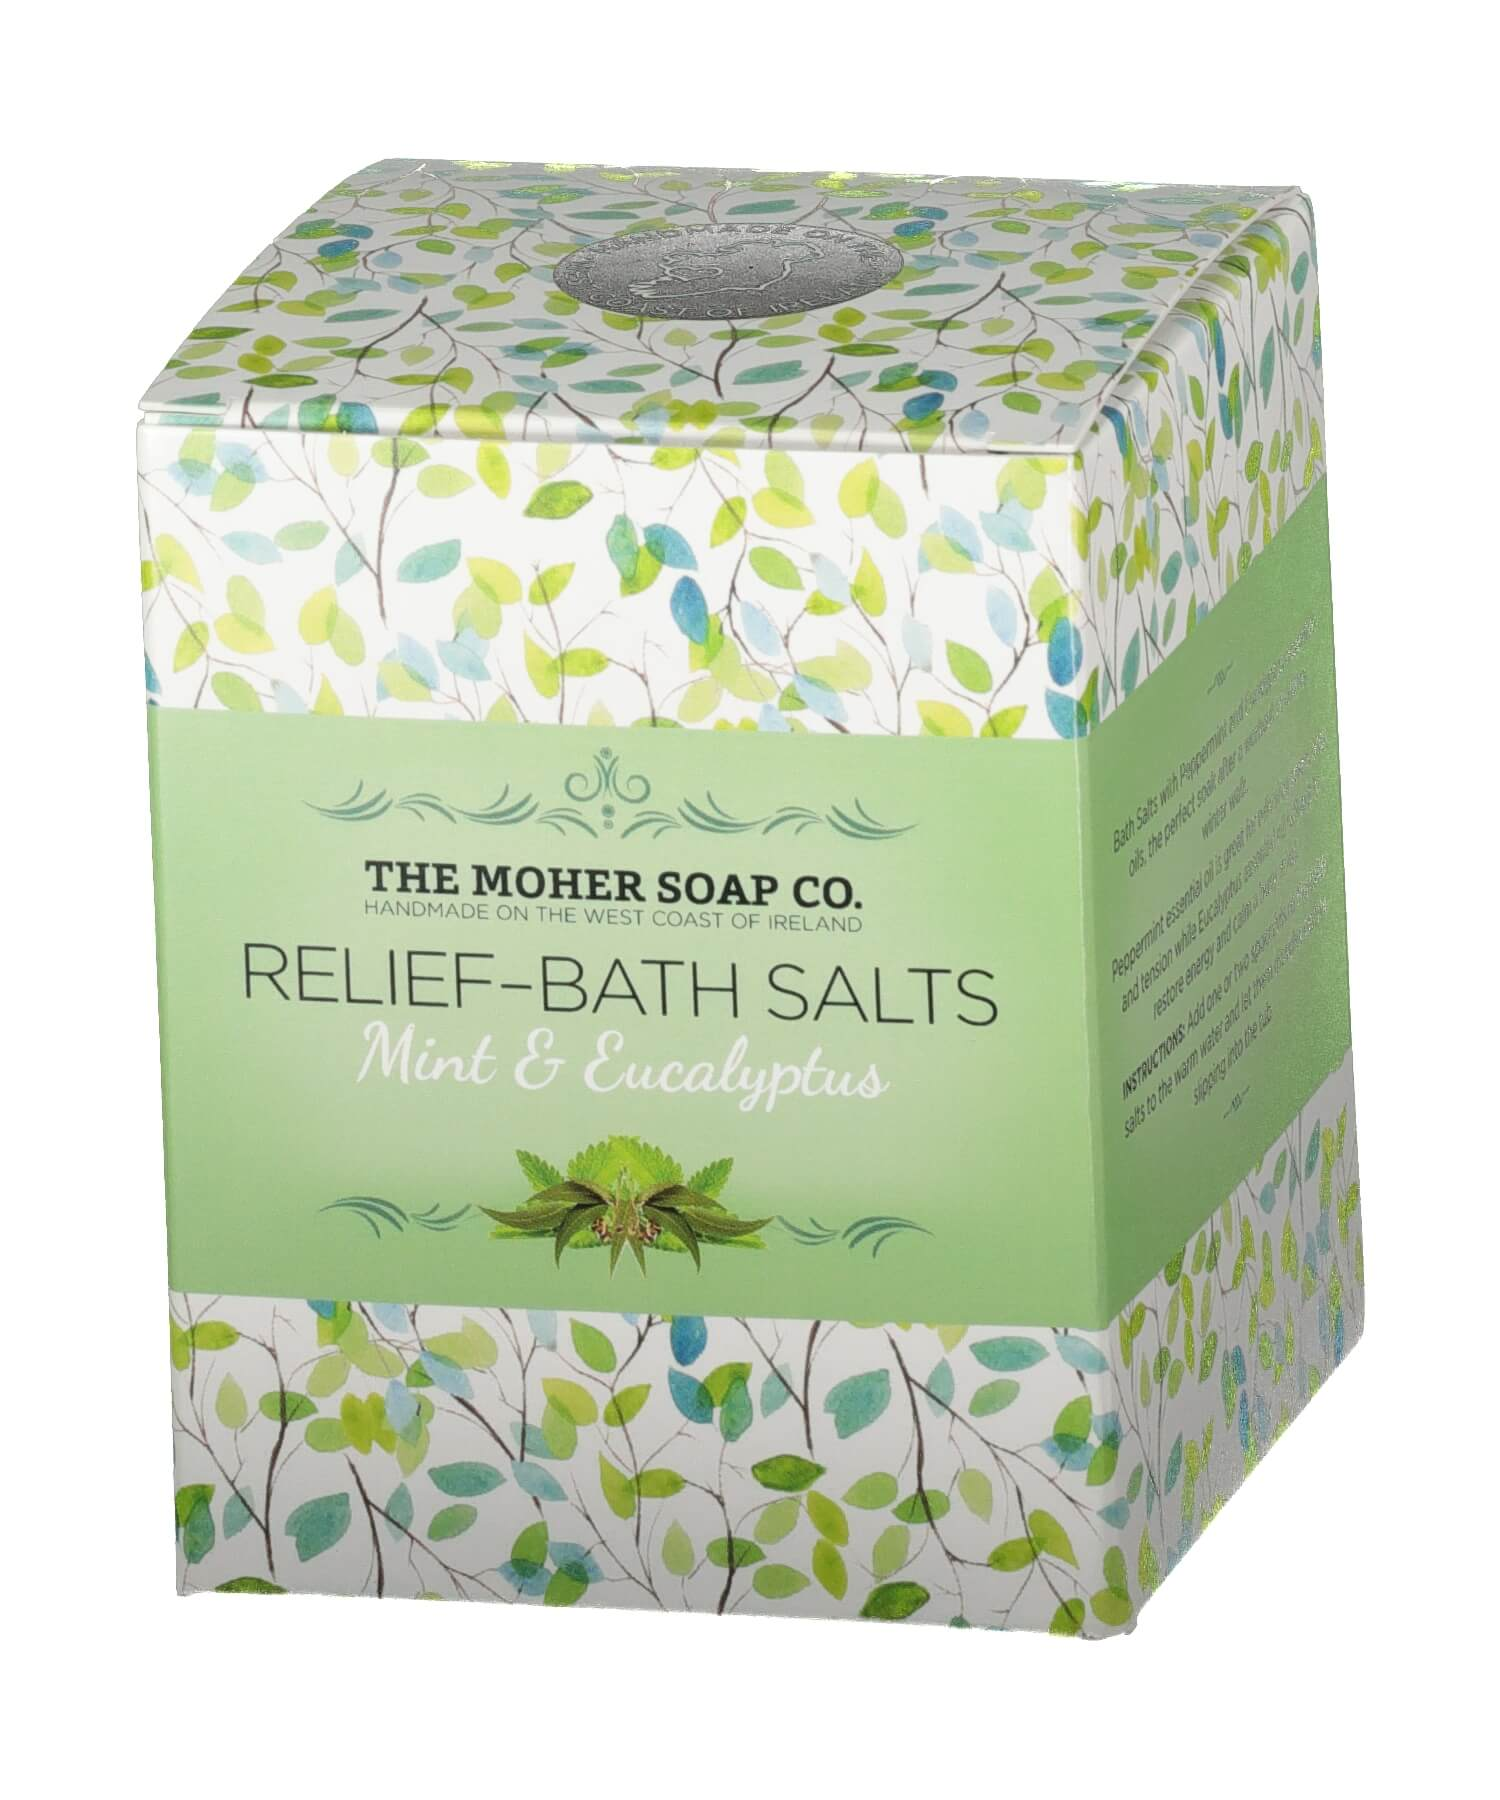 Bath Salts - Mint & Eucalyptus - [The Moher Soap Co.] - Skincare & Beauty - Irish Gifts